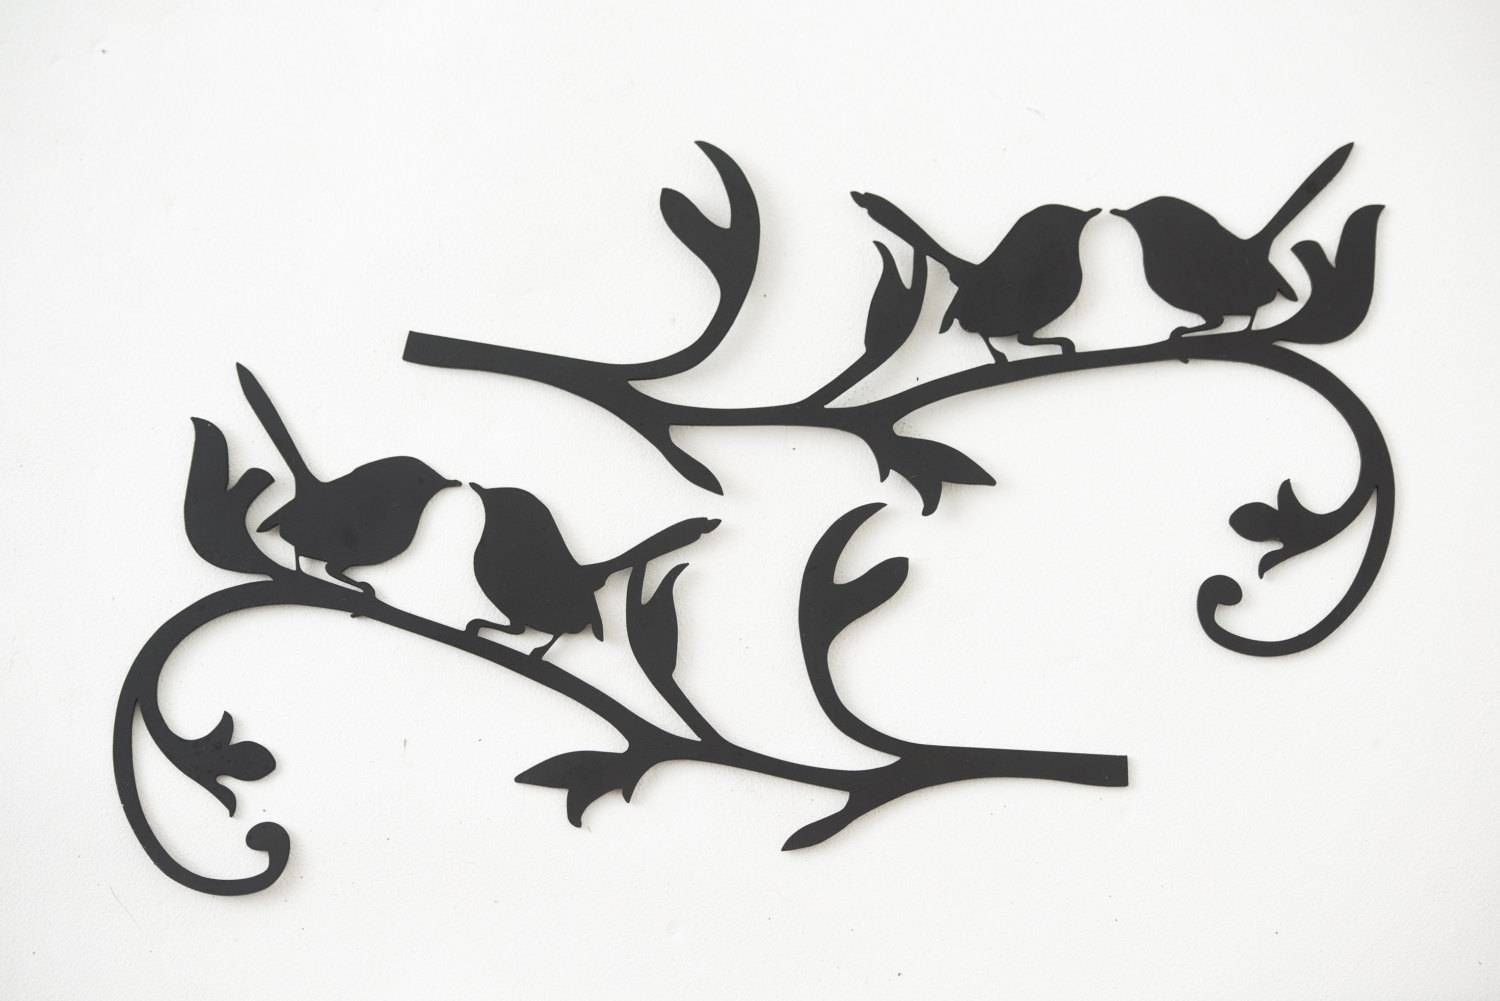 Wall Art Designs: Metal Bird Wall Art Hand Drawn And Laser Cut With Regard To Most Popular Branches Metal Wall Art (View 16 of 20)